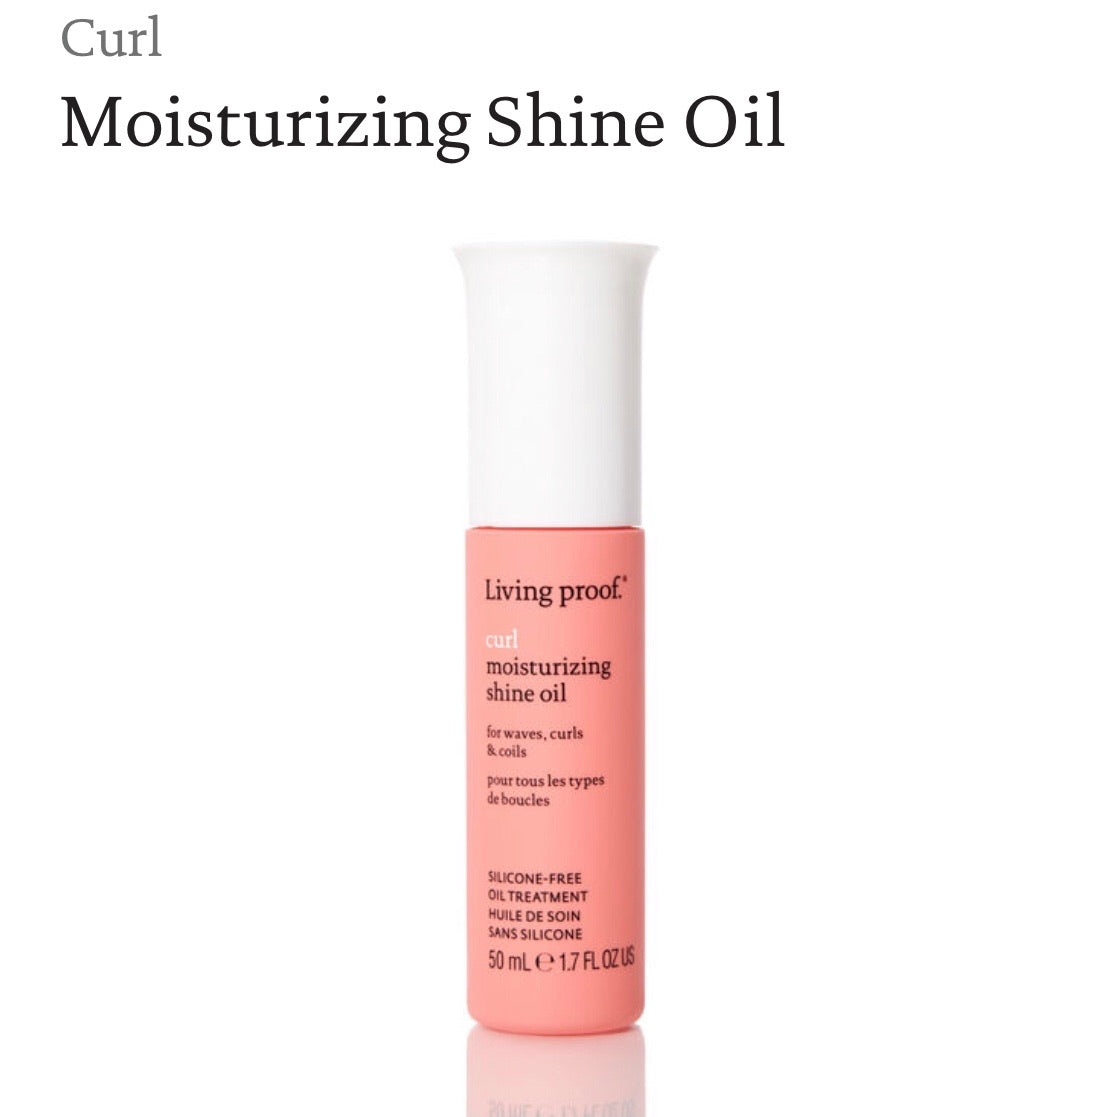 Living Proof Curl Moisturizing Shine Oil